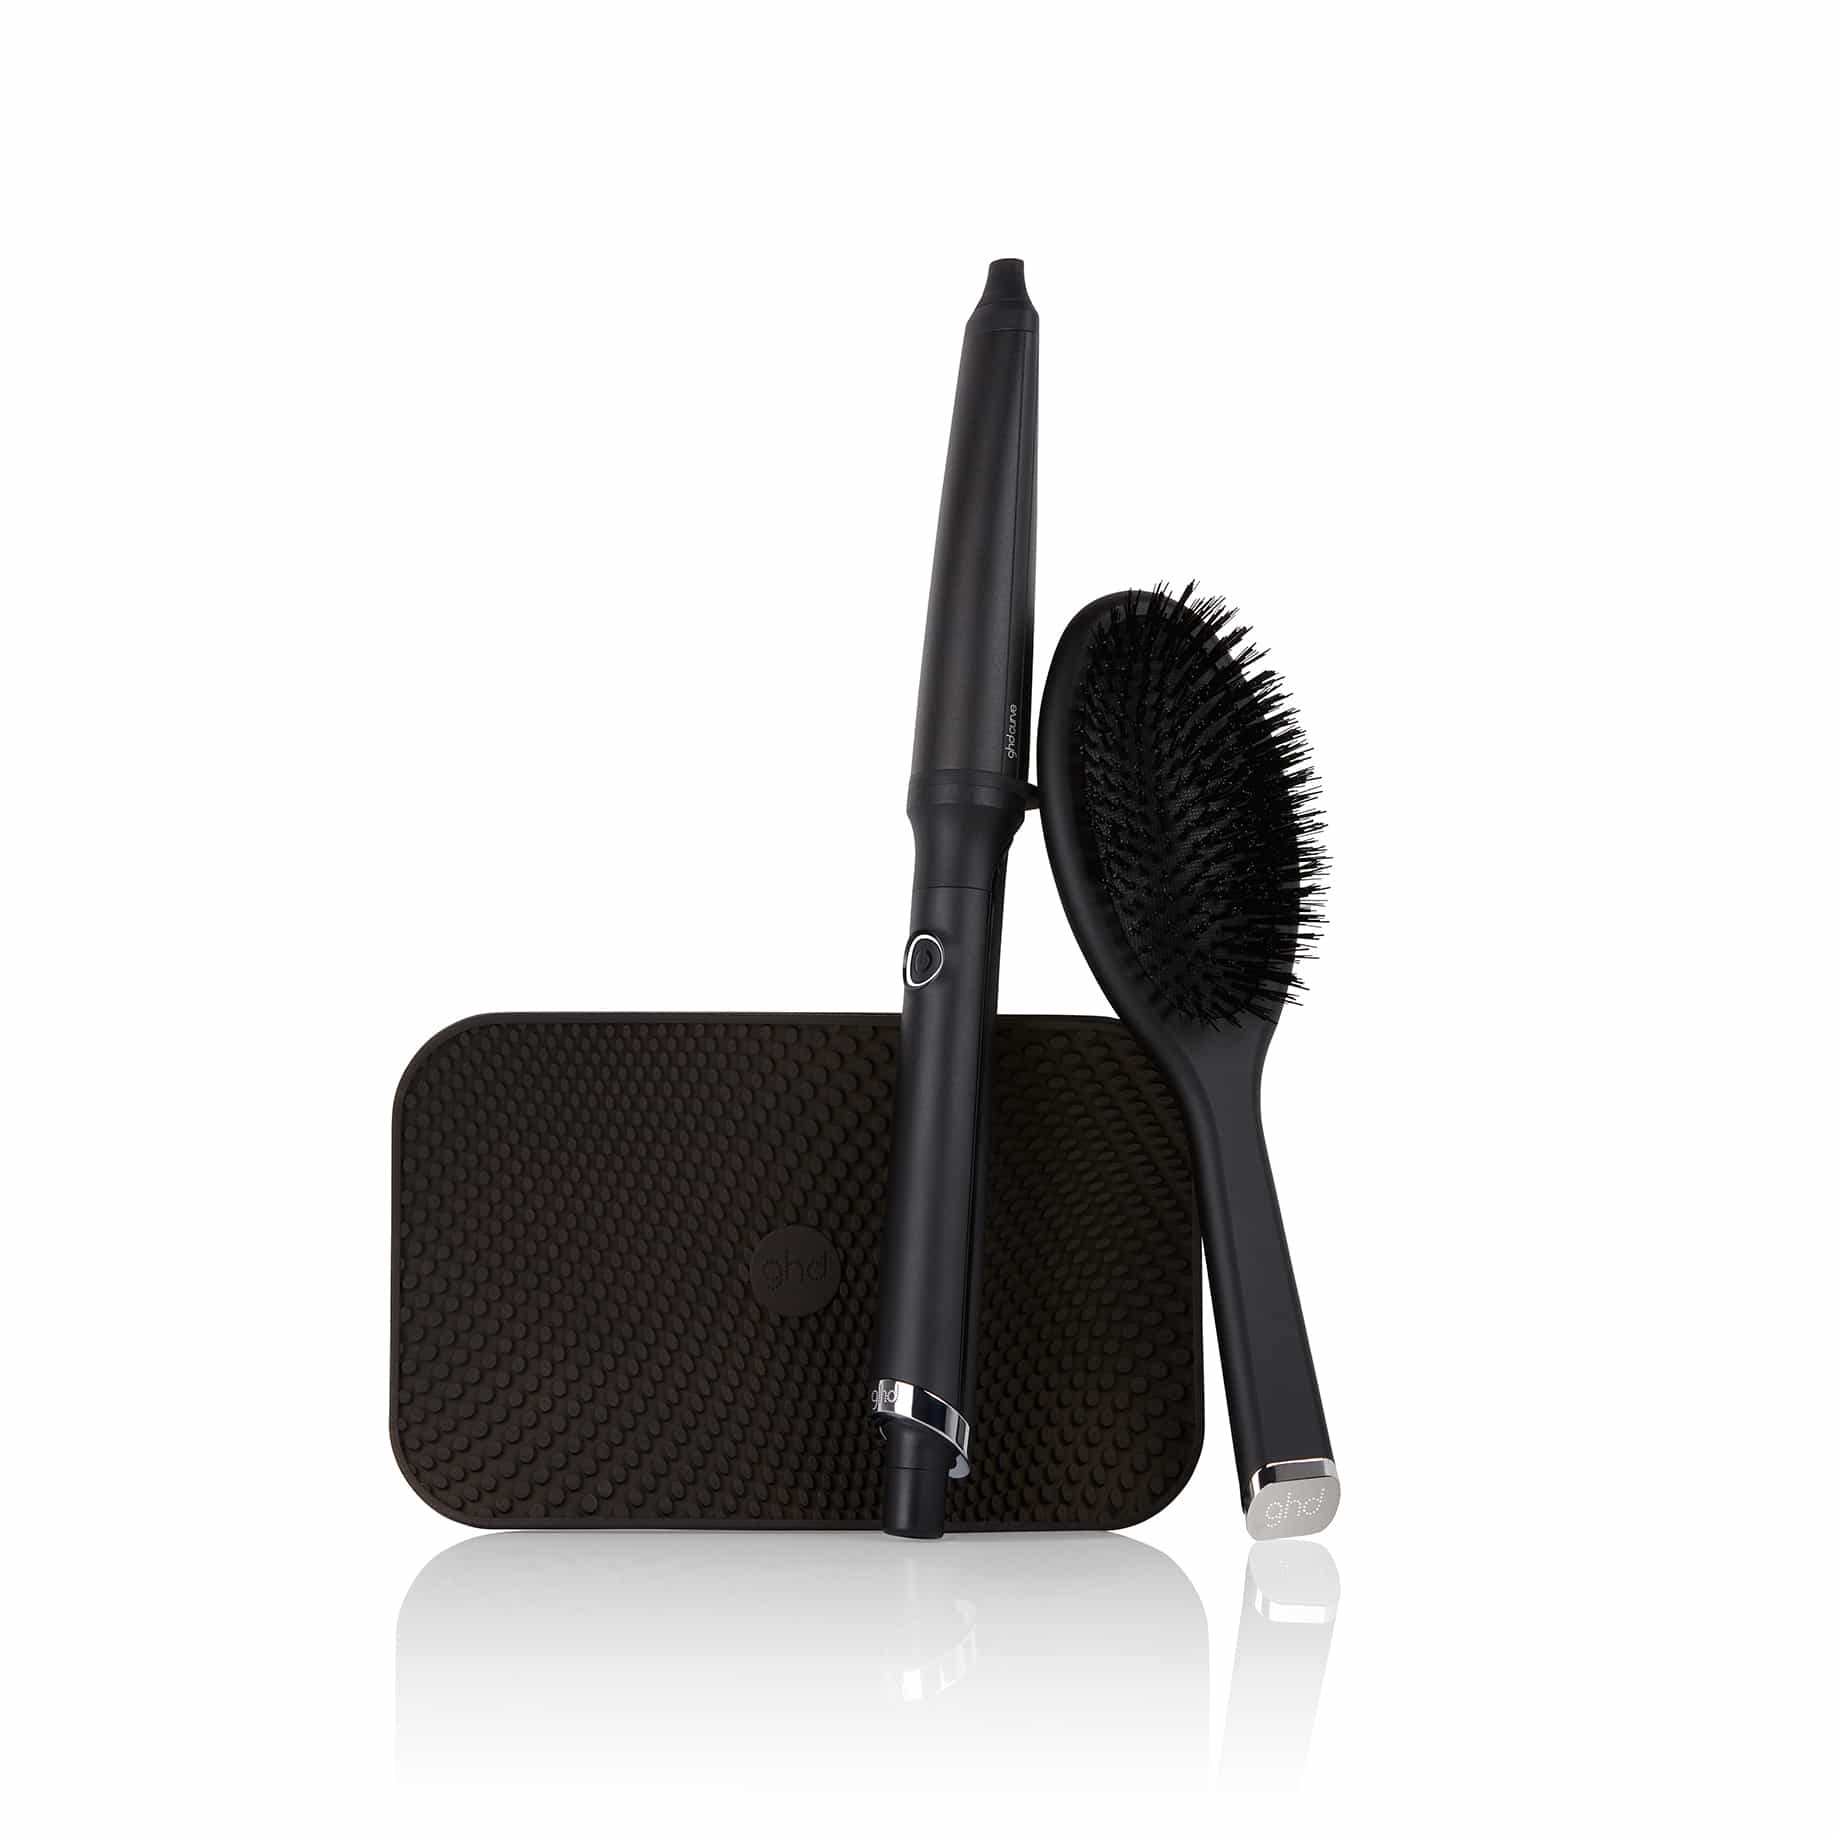 GHD CREATIVE CURL WAND WITH HEAT RESISTANT MAT & BRUSH